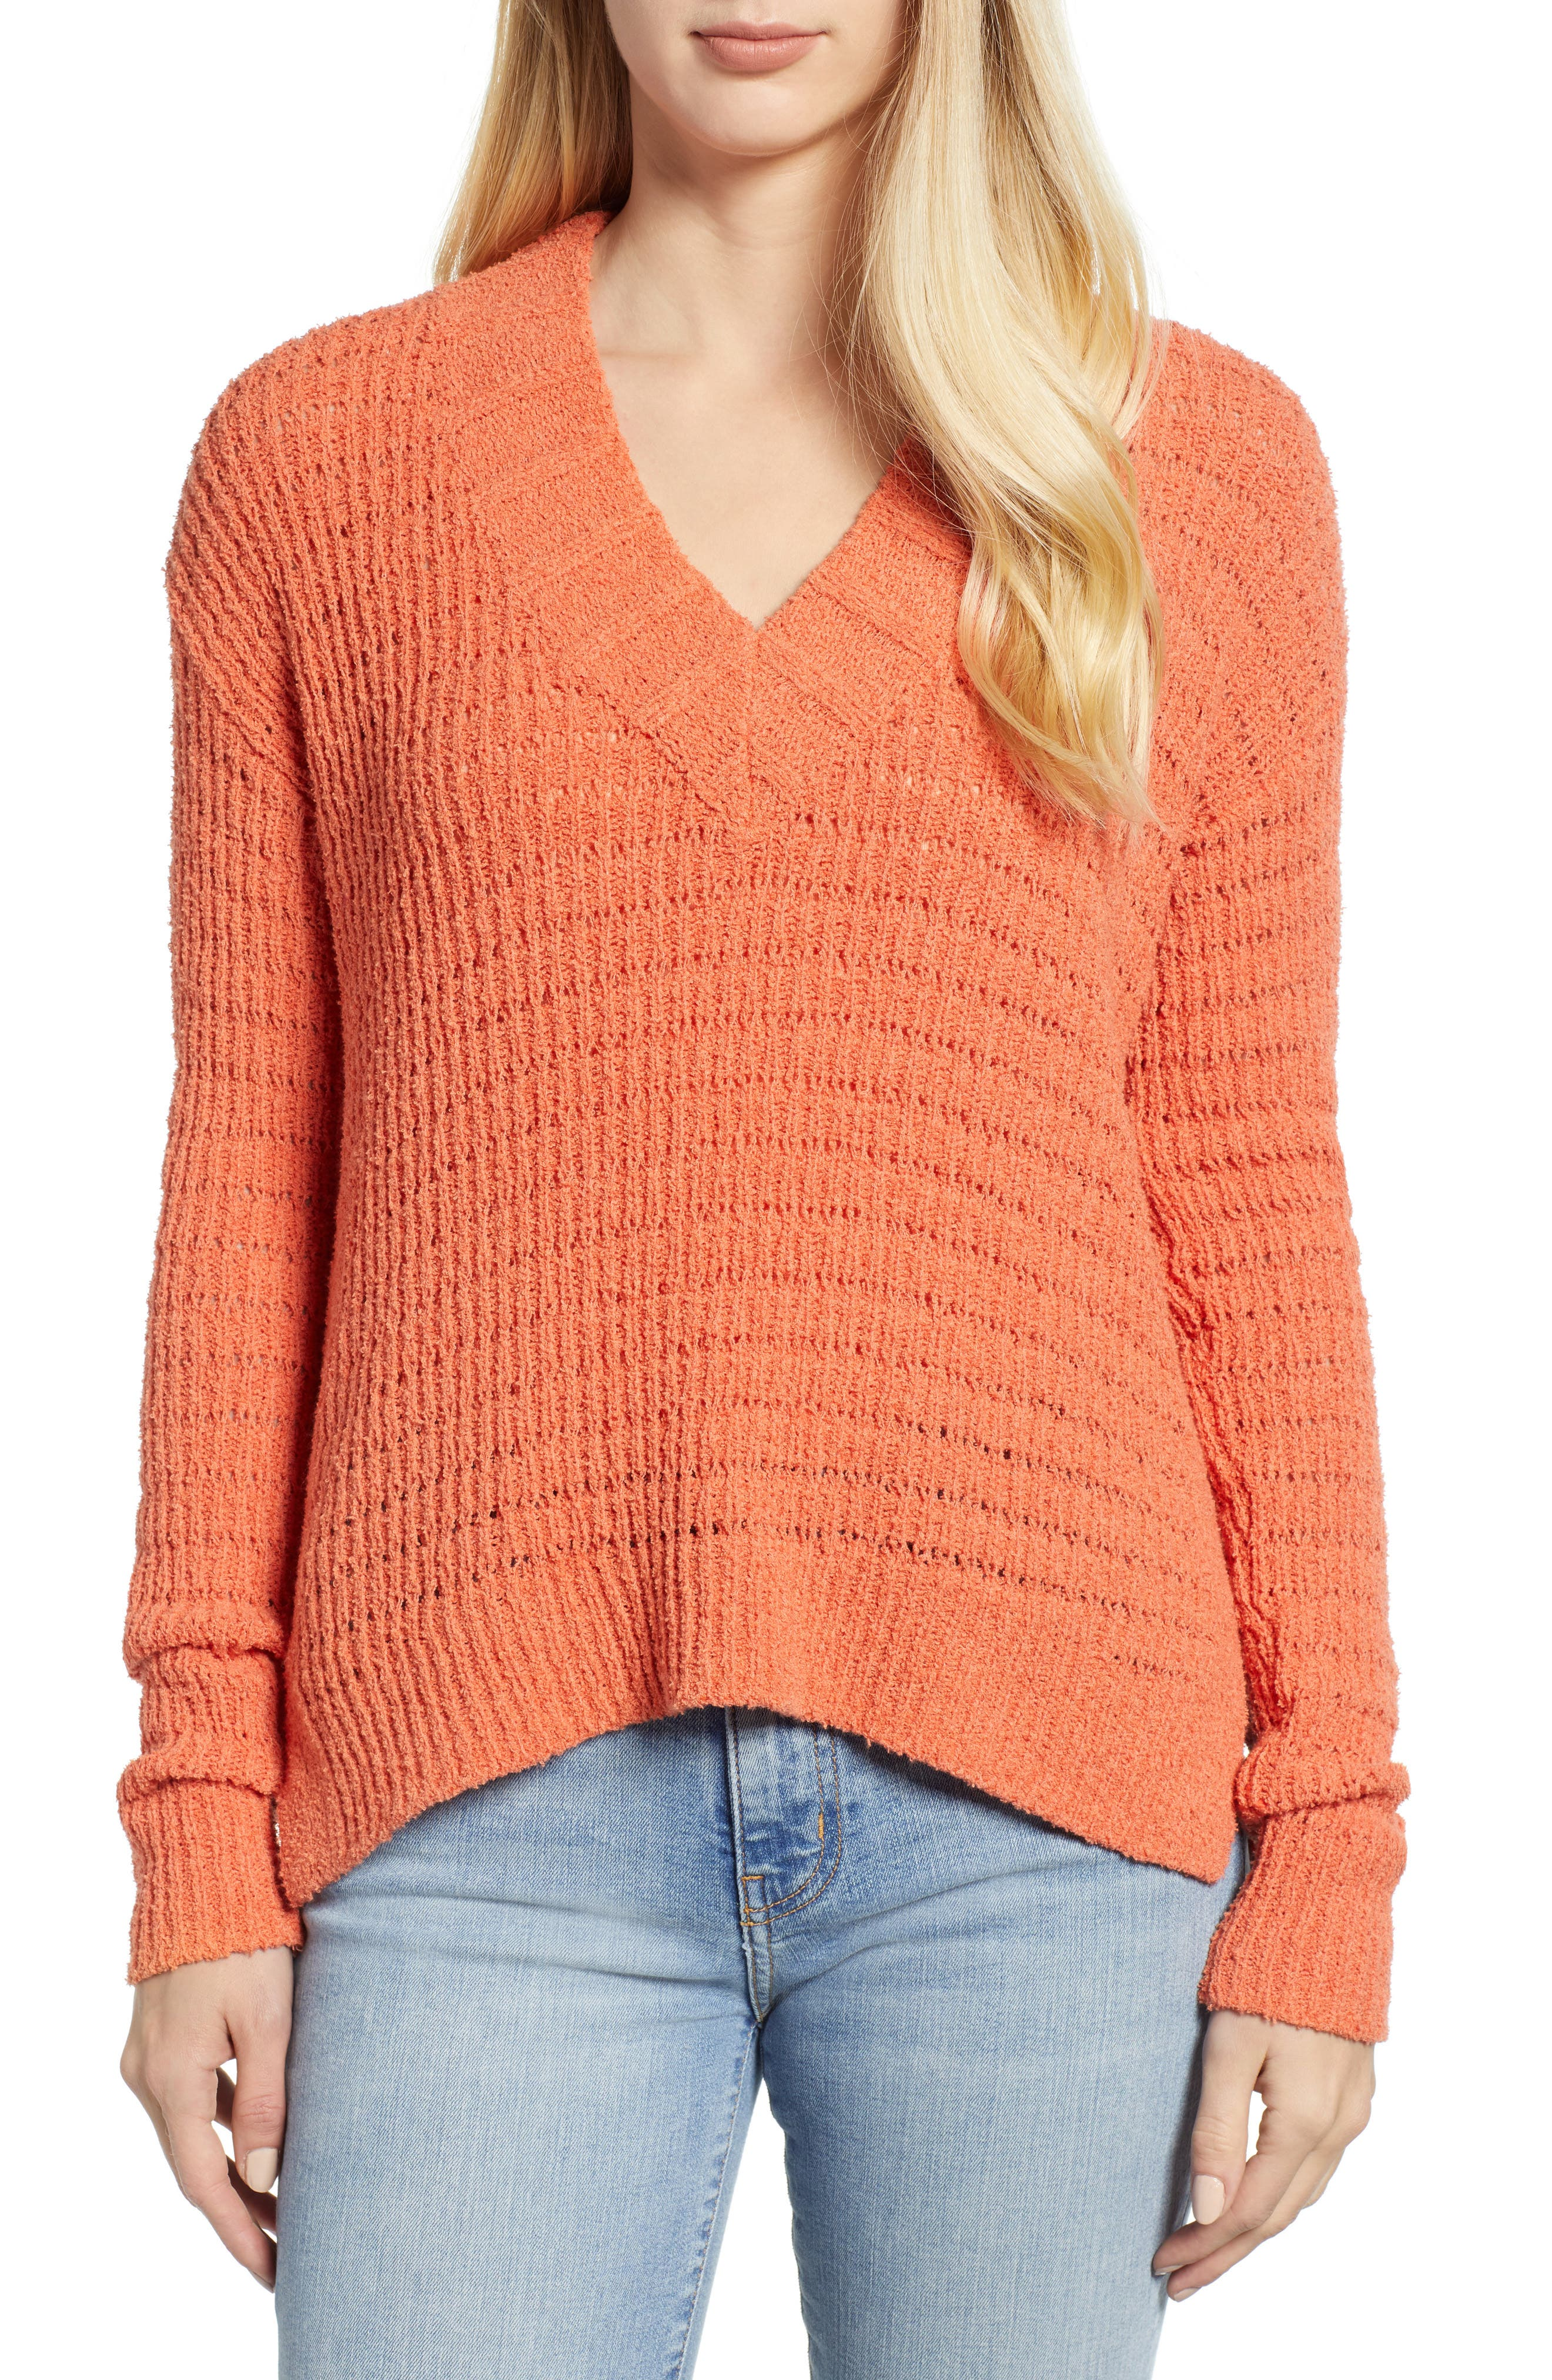 CASLON<SUP>®</SUP>, Tuck Stitch Sweater, Main thumbnail 1, color, 801